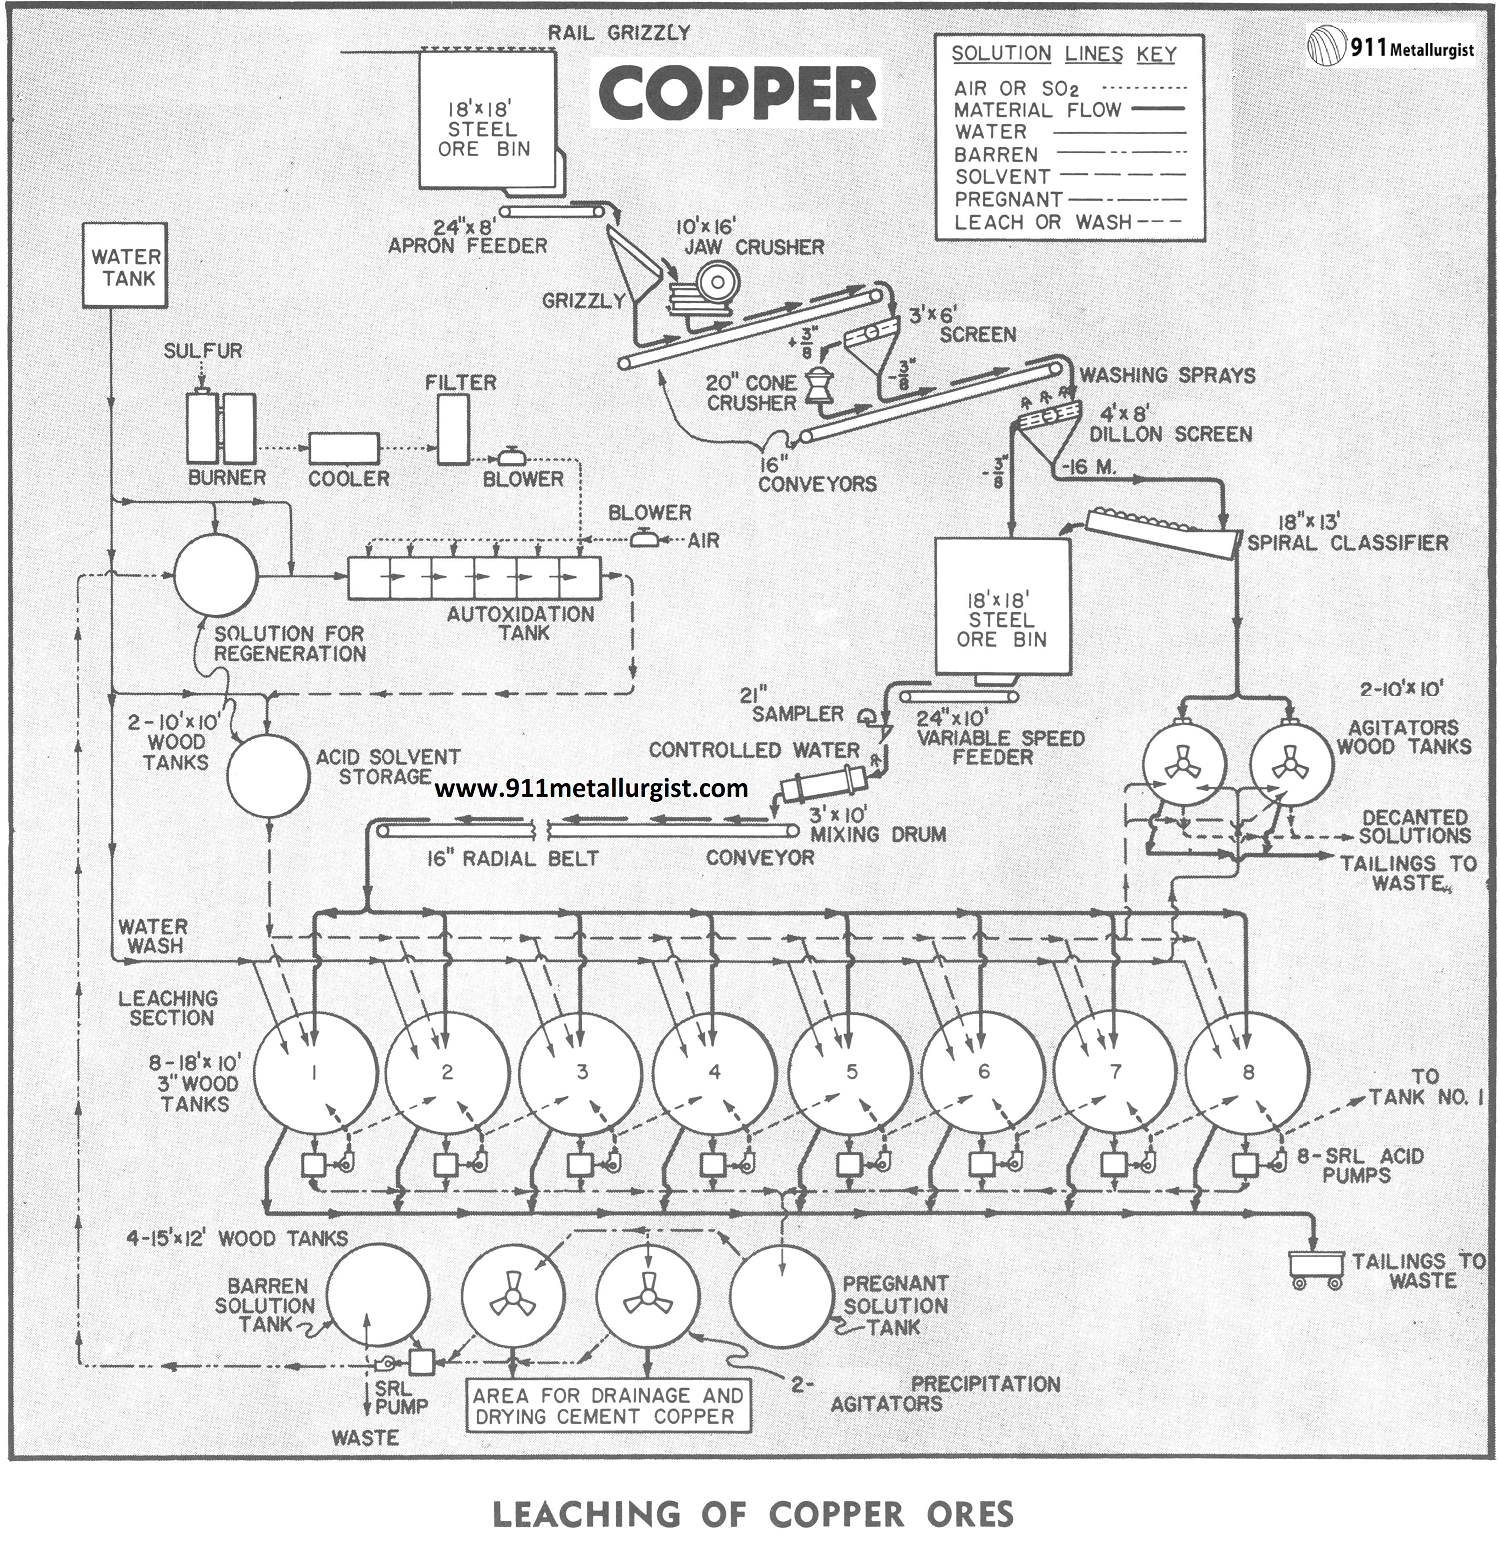 Leaching of Copper Ores